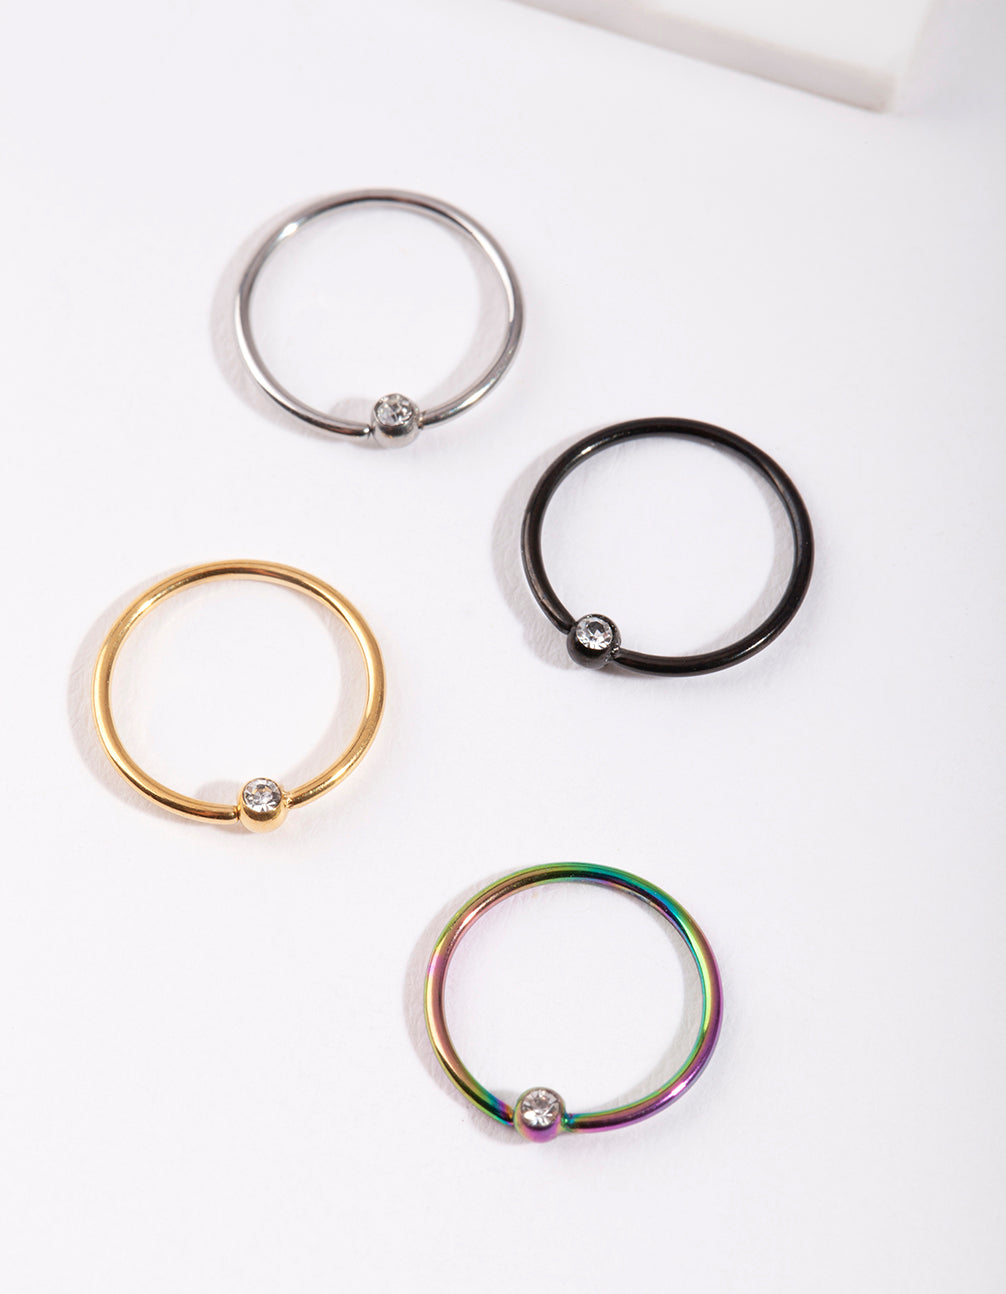 Mixed Metal Diamante Nose Ring 4 Pack